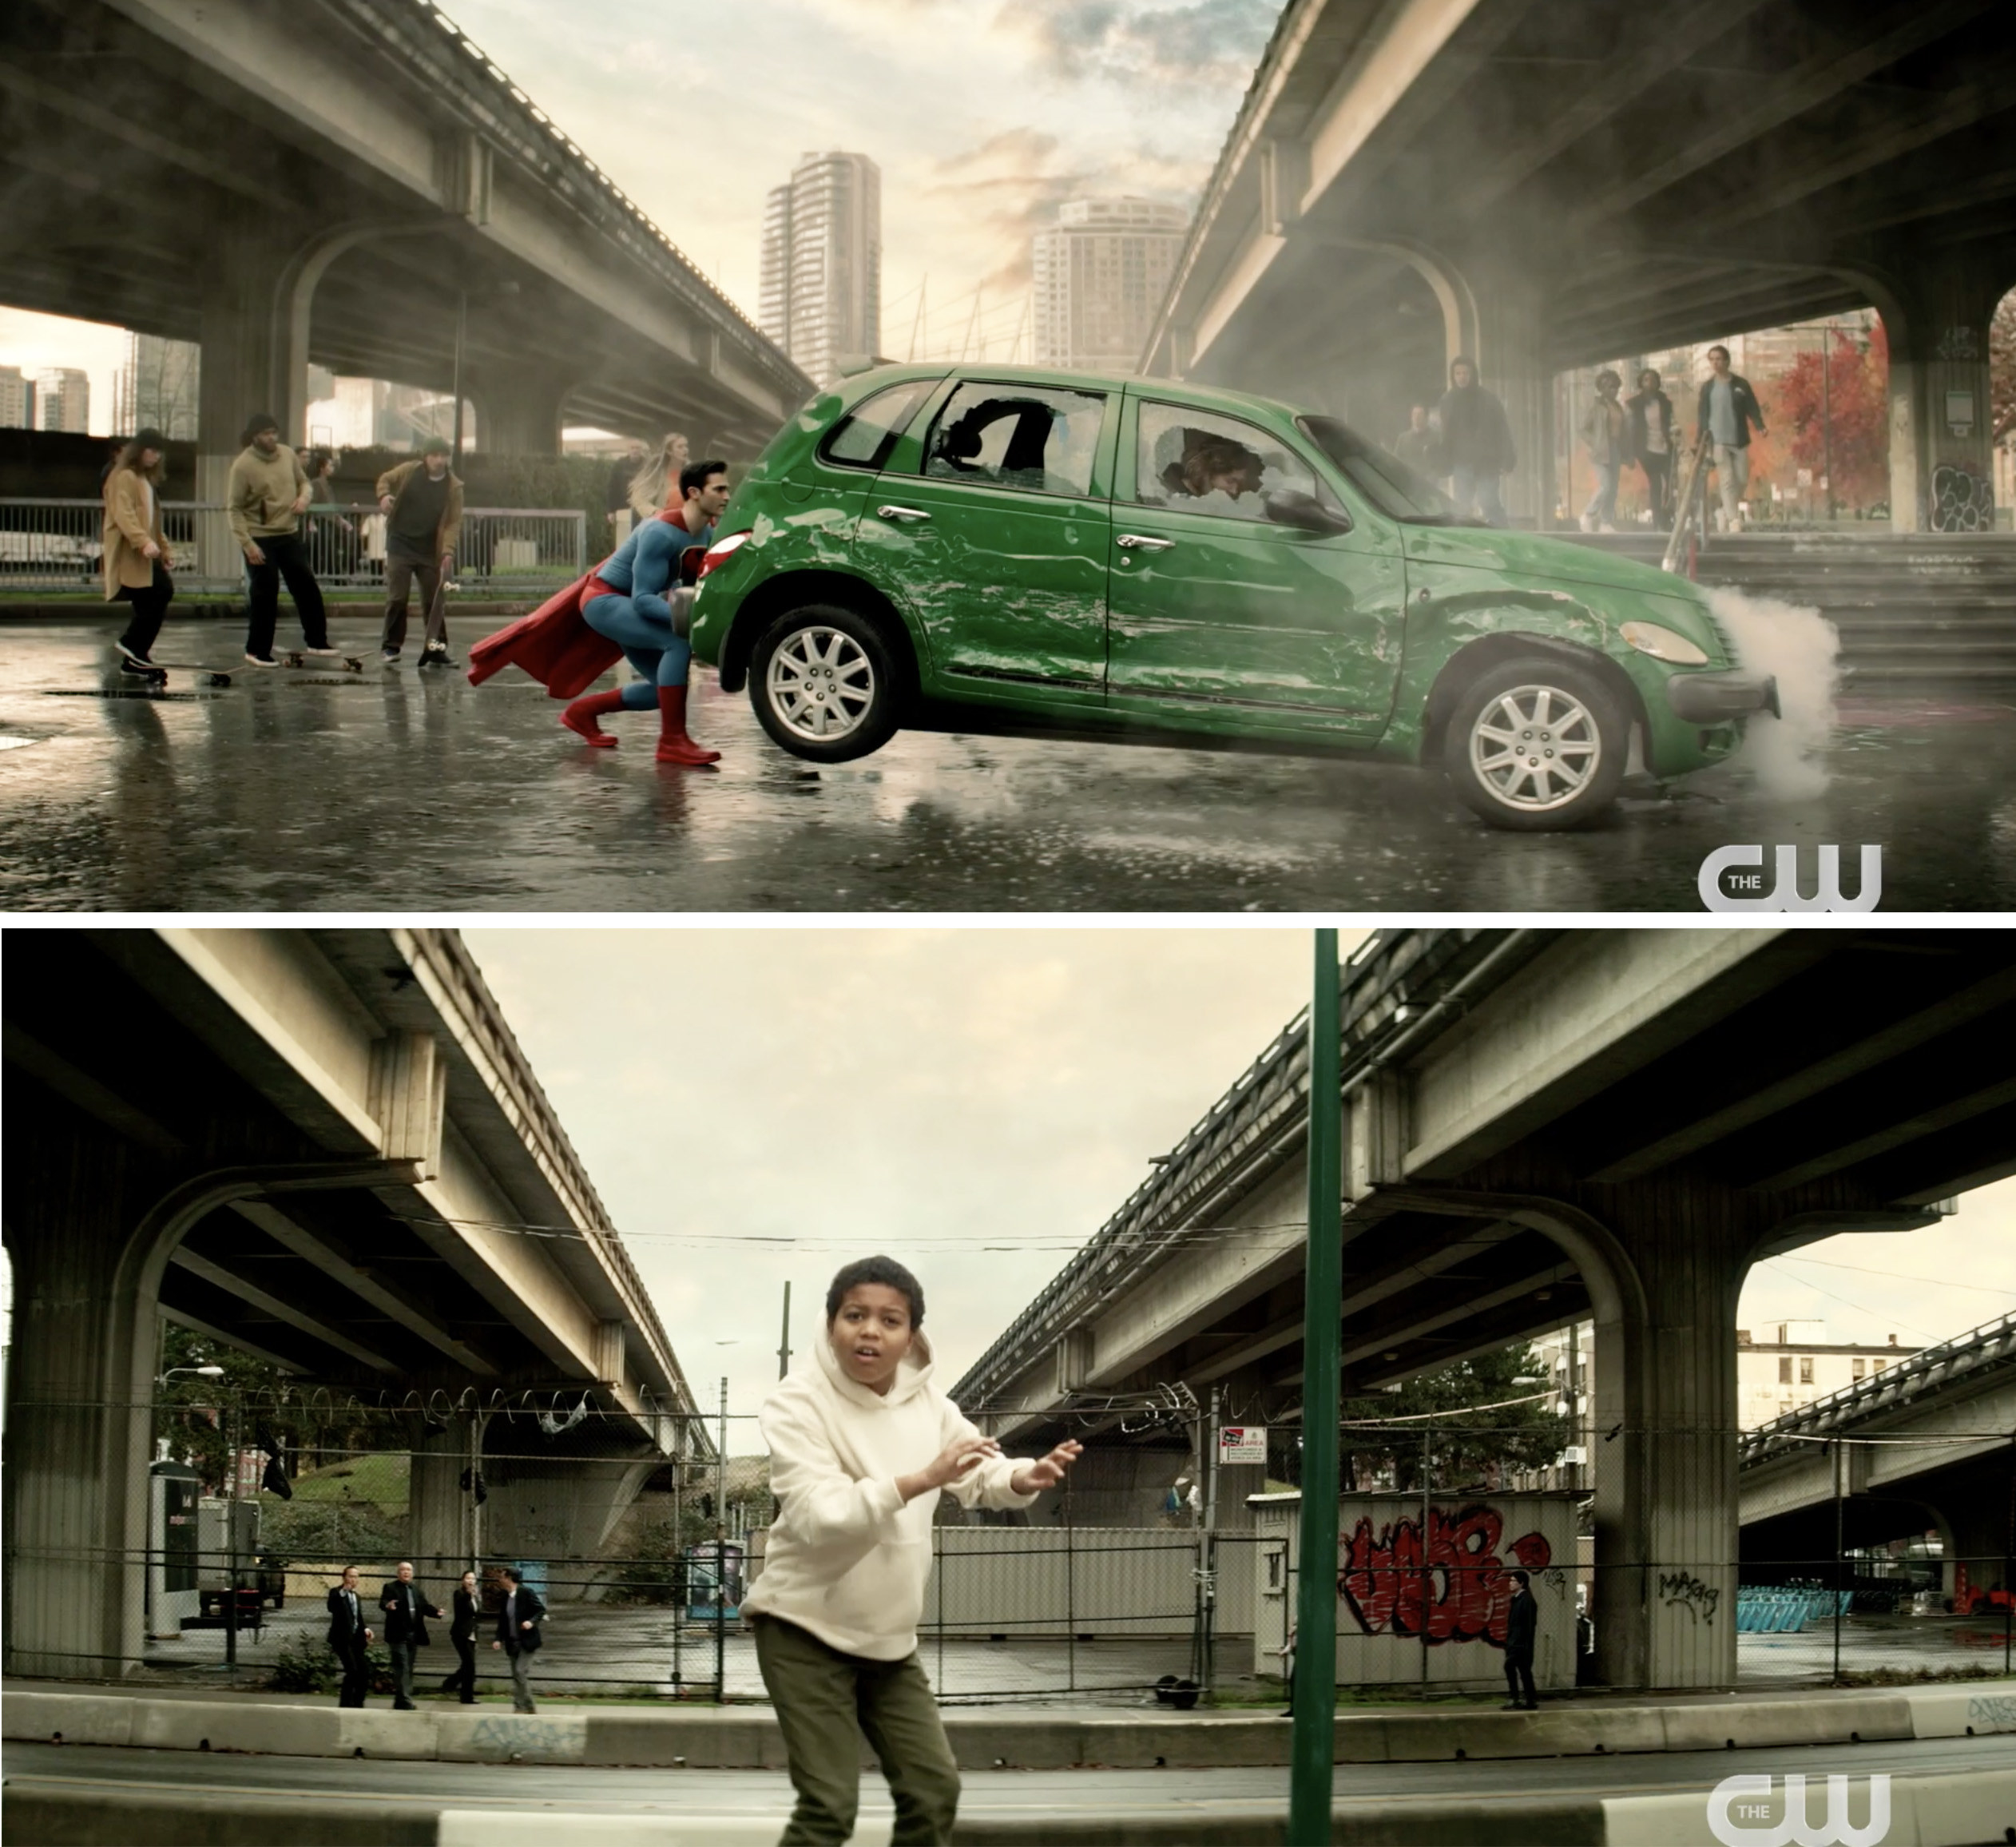 Superman stopping a green car from crushing a child